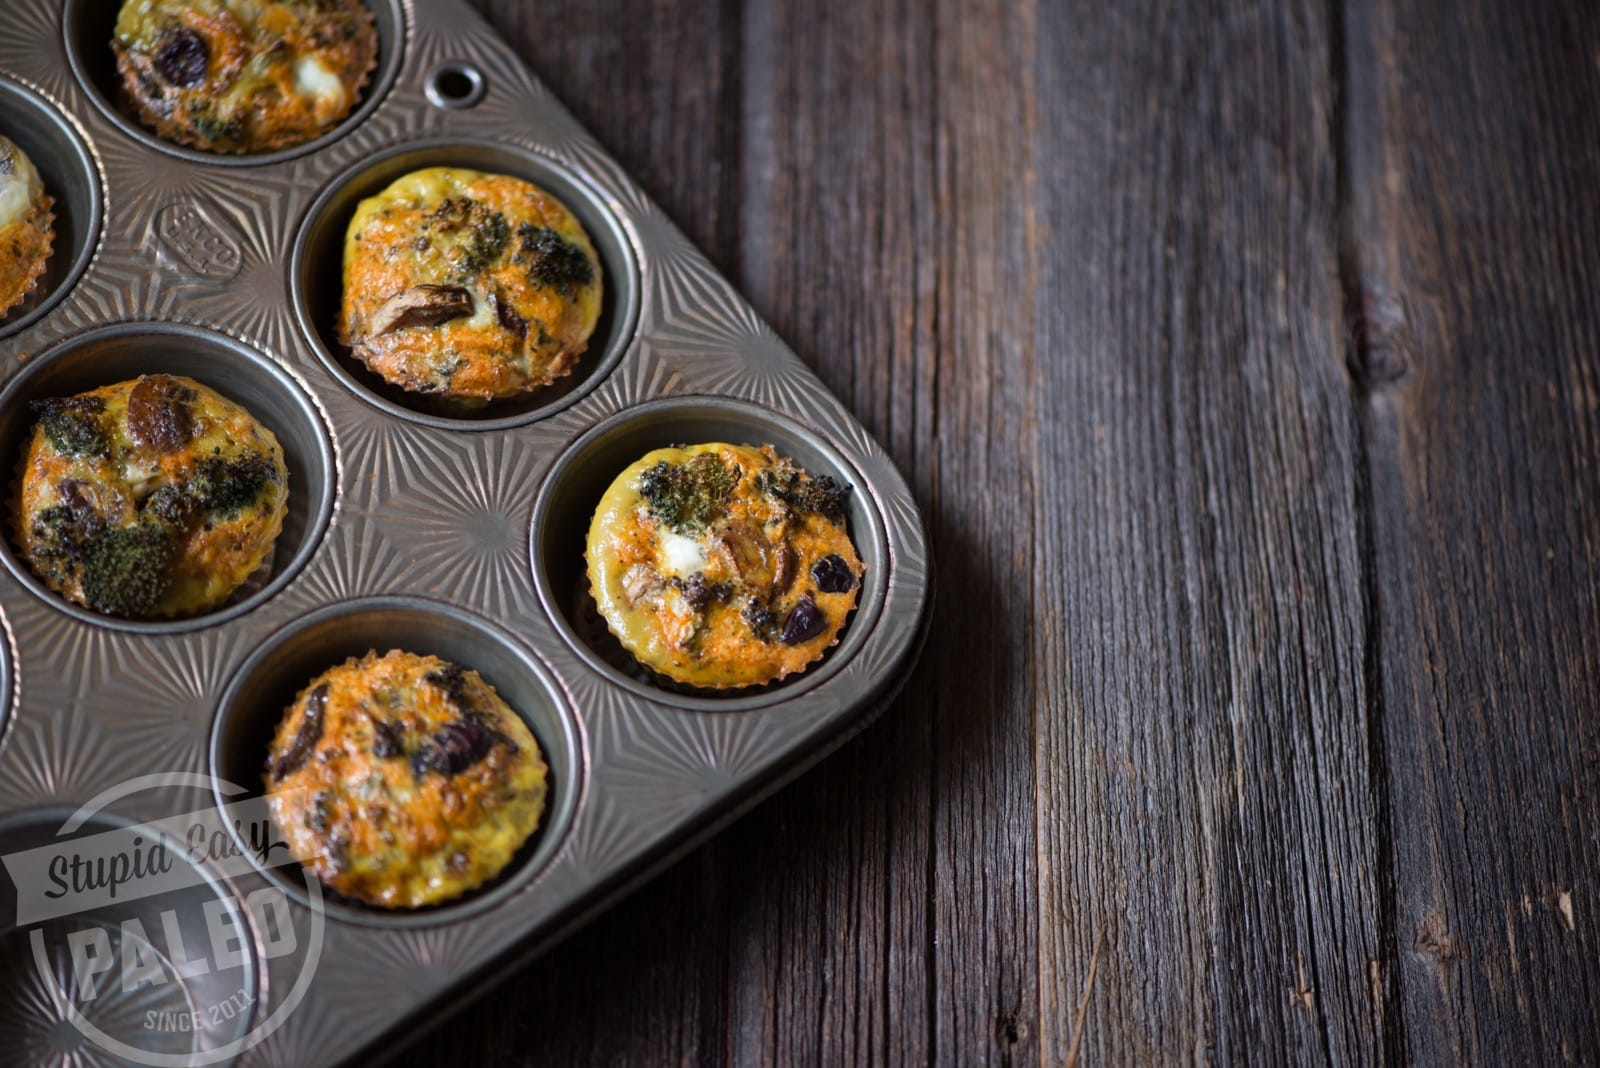 These delicious Paleo Pizza Egg Muffins have all the flavor of pizza without the gluten or dairy. Loaded with veggies & Whole30-friendly!   StupidEasyPaleo.com